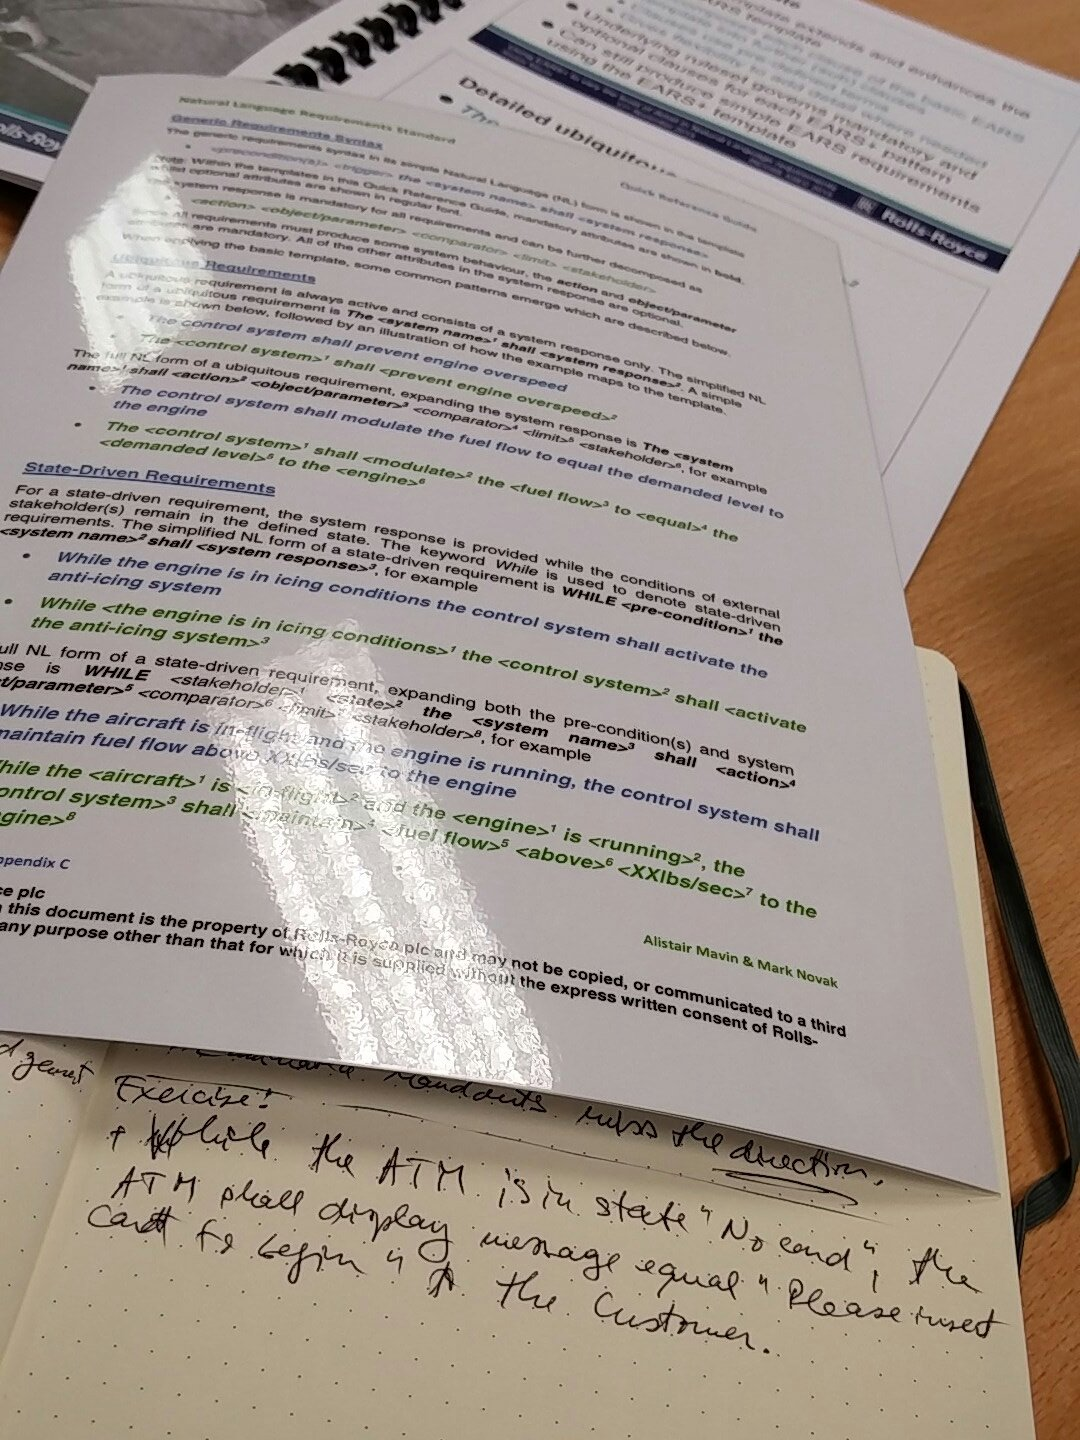 Re-learning to write requirements? @ EARS tutorial #ASEC2016 @incoseuk https://t.co/IJkWre5lMB